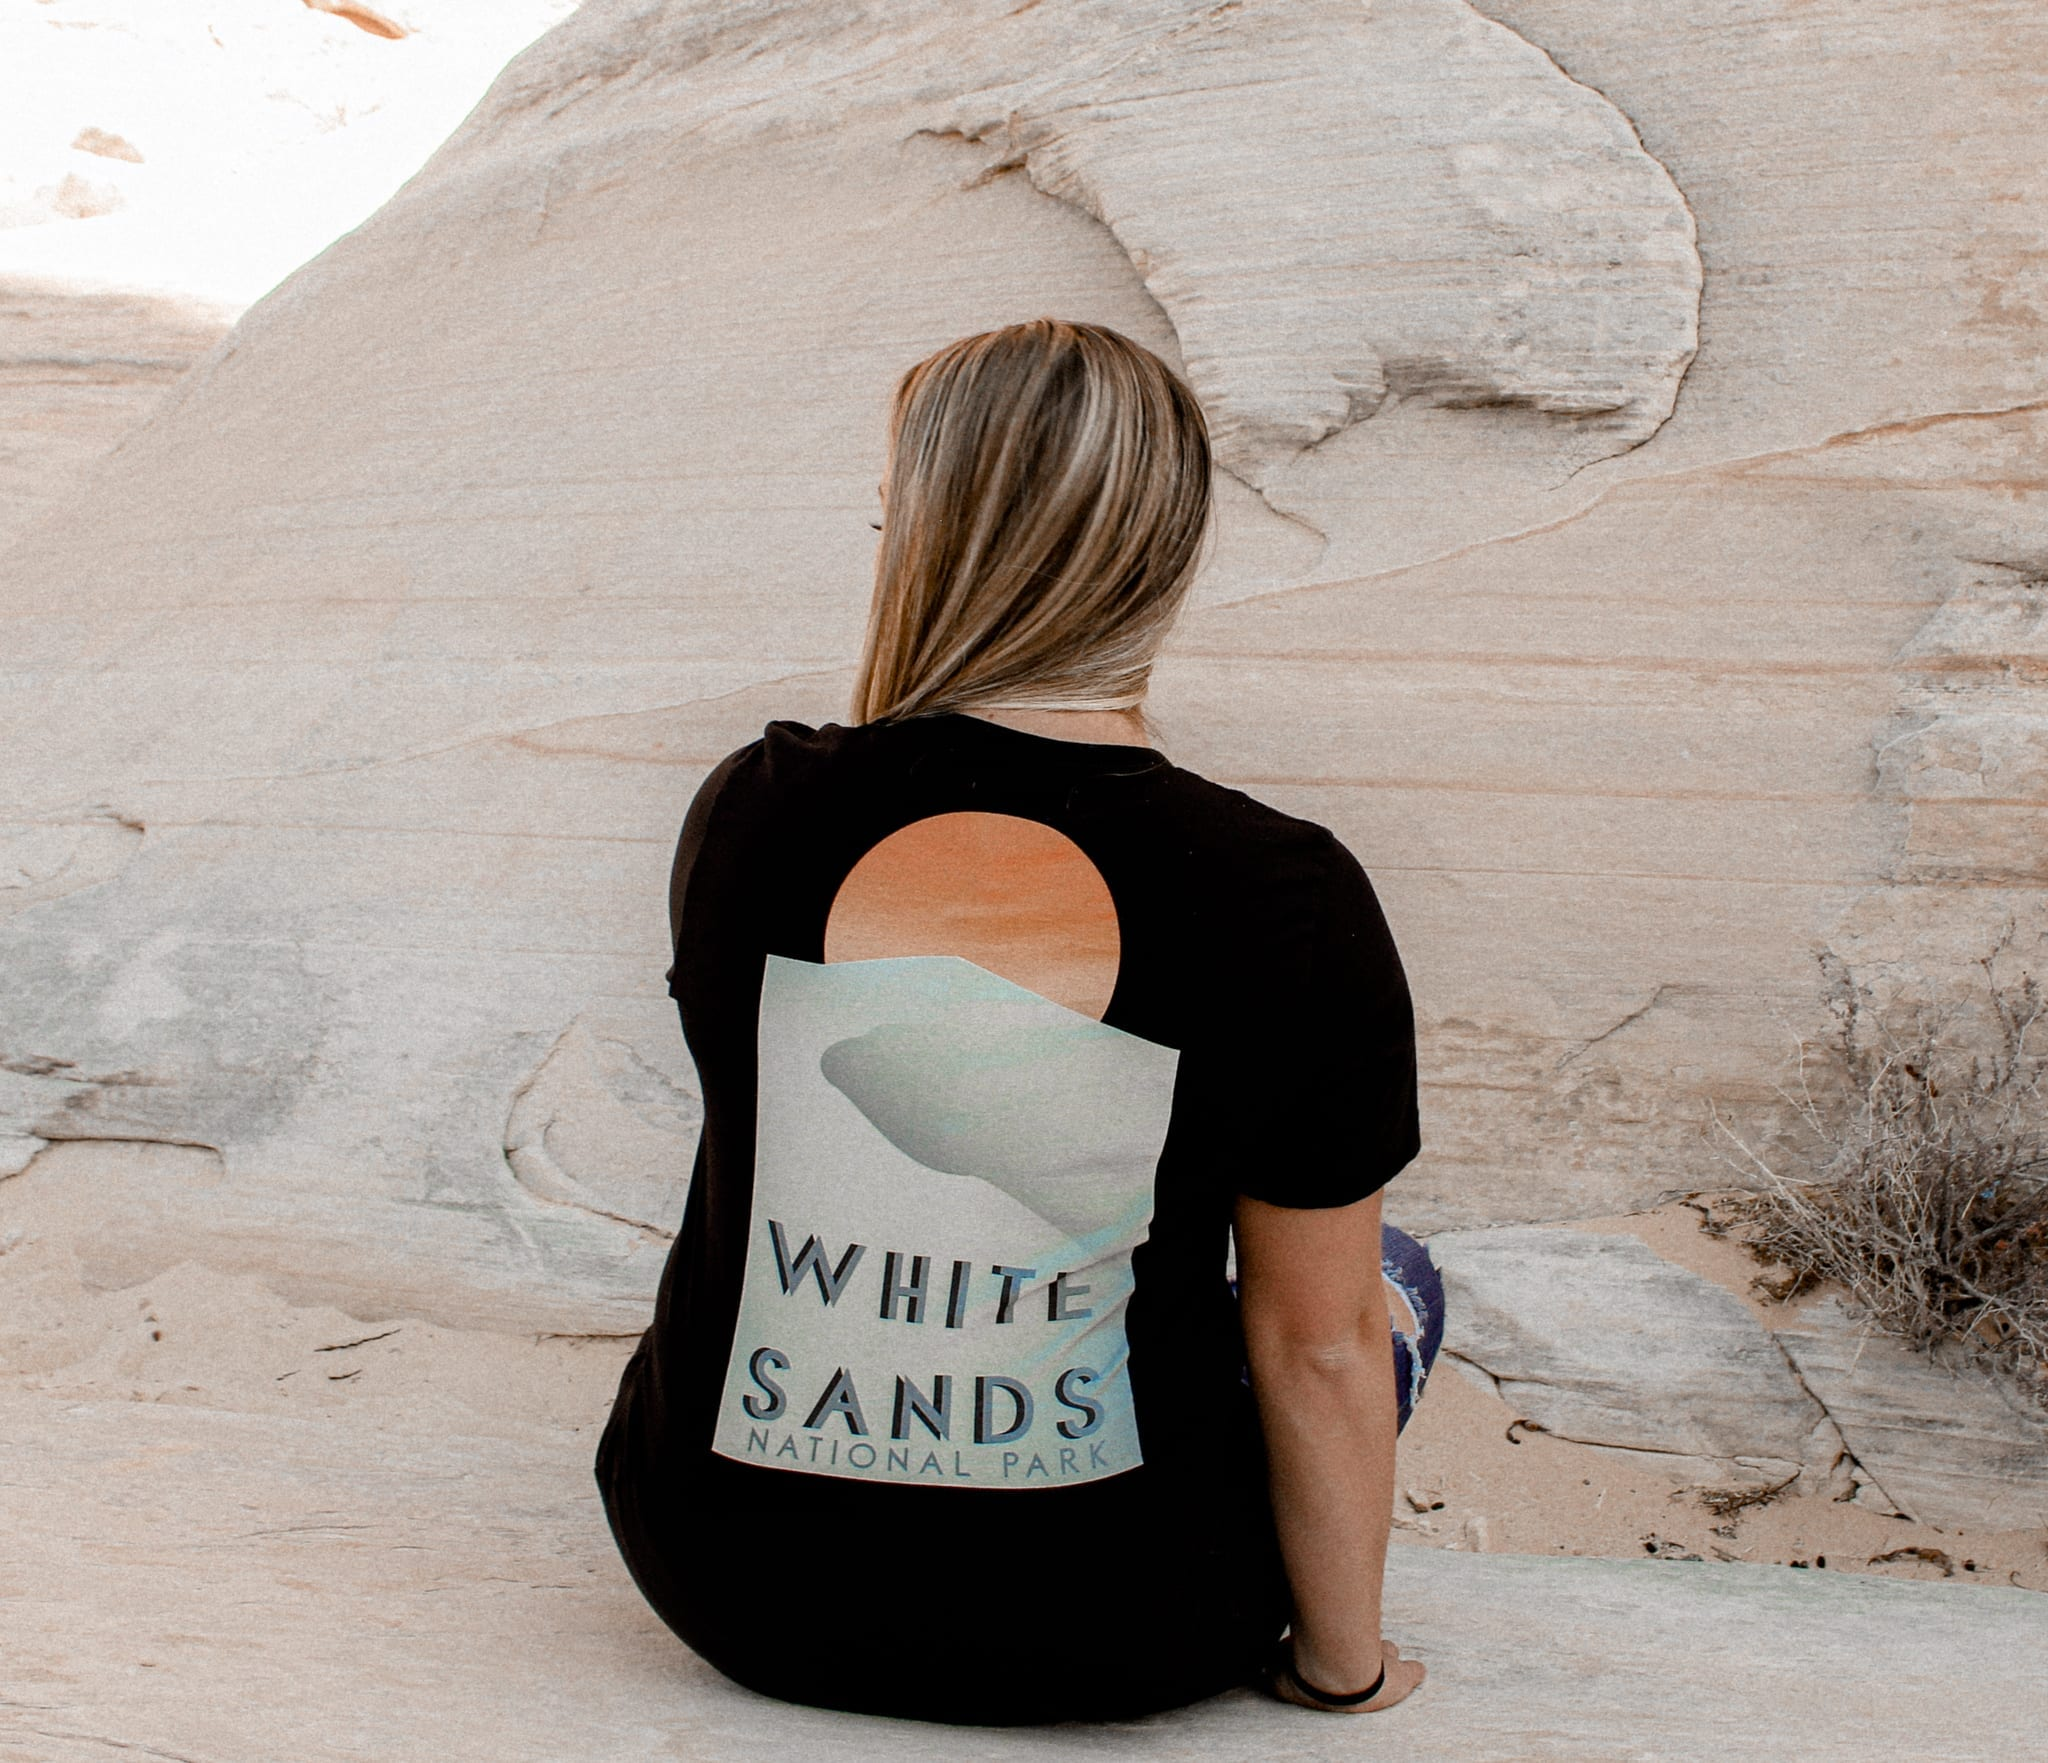 Female sitting against a rock with a white sands national park t-shirt